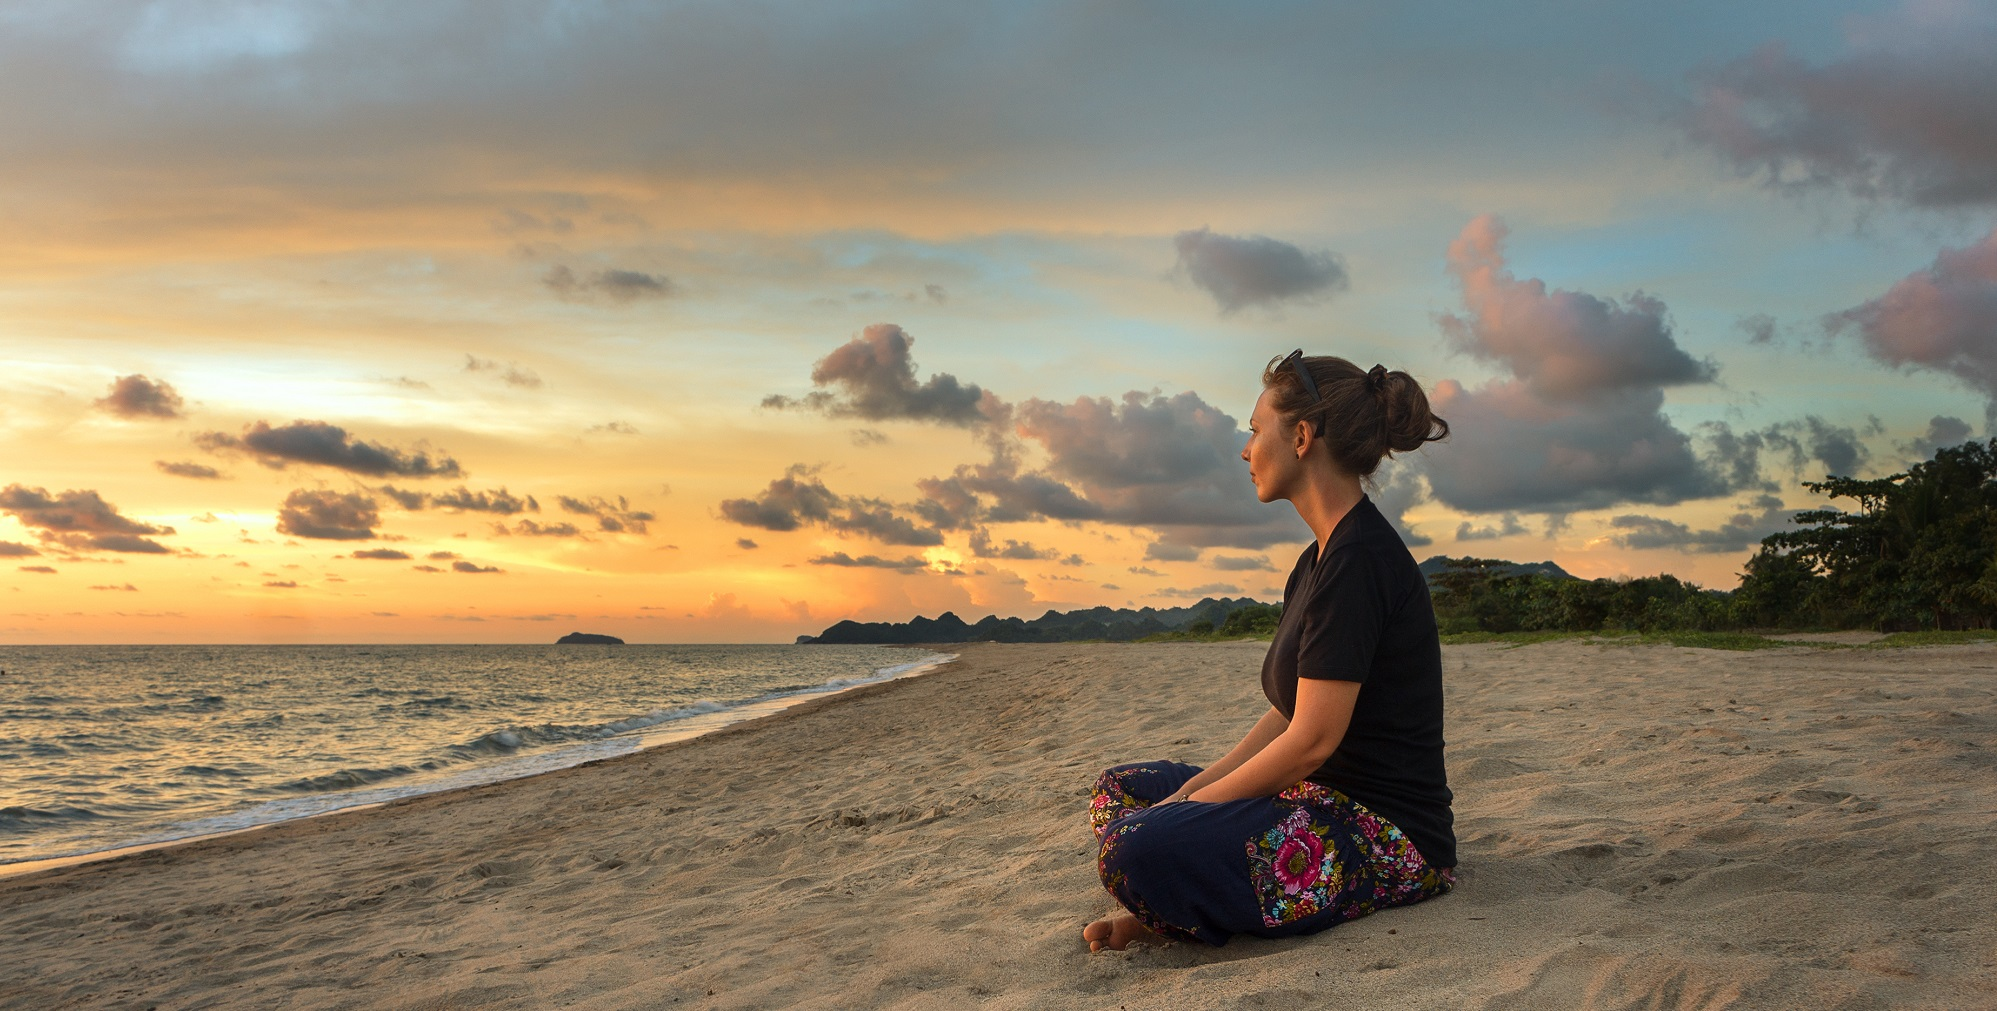 Is mindfulness really needed? 6